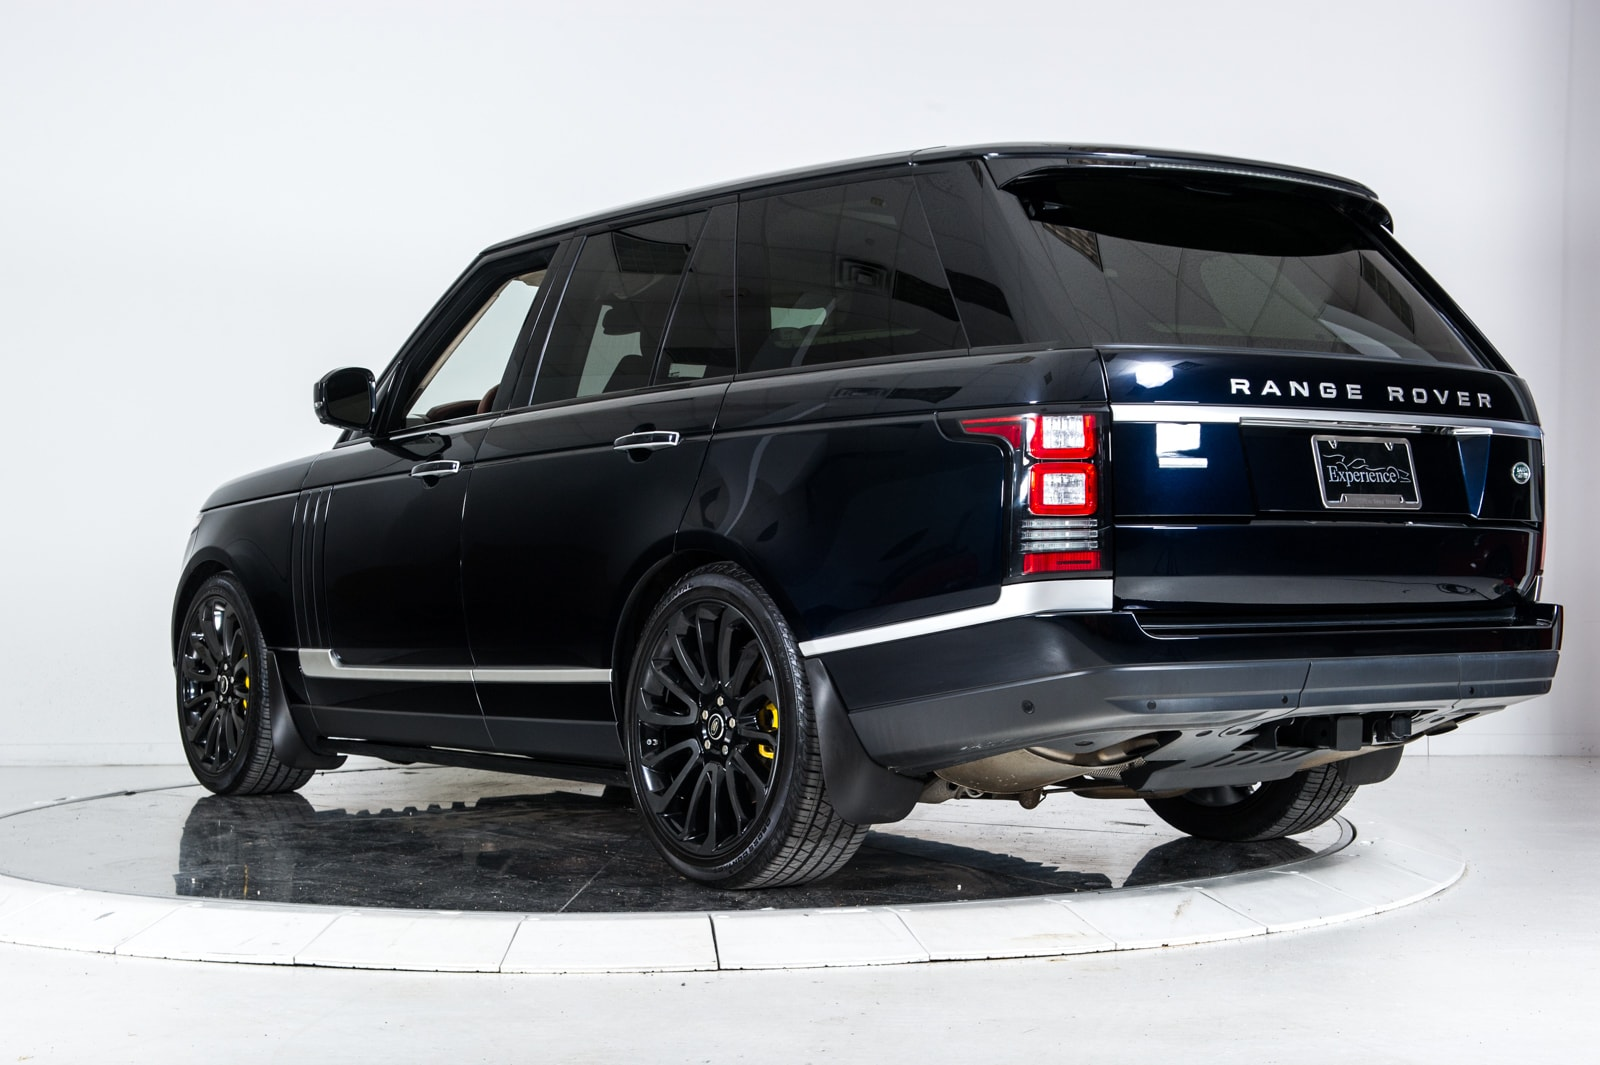 used 2014 land rover range rover autobiography for sale plainview near long island ny vin. Black Bedroom Furniture Sets. Home Design Ideas